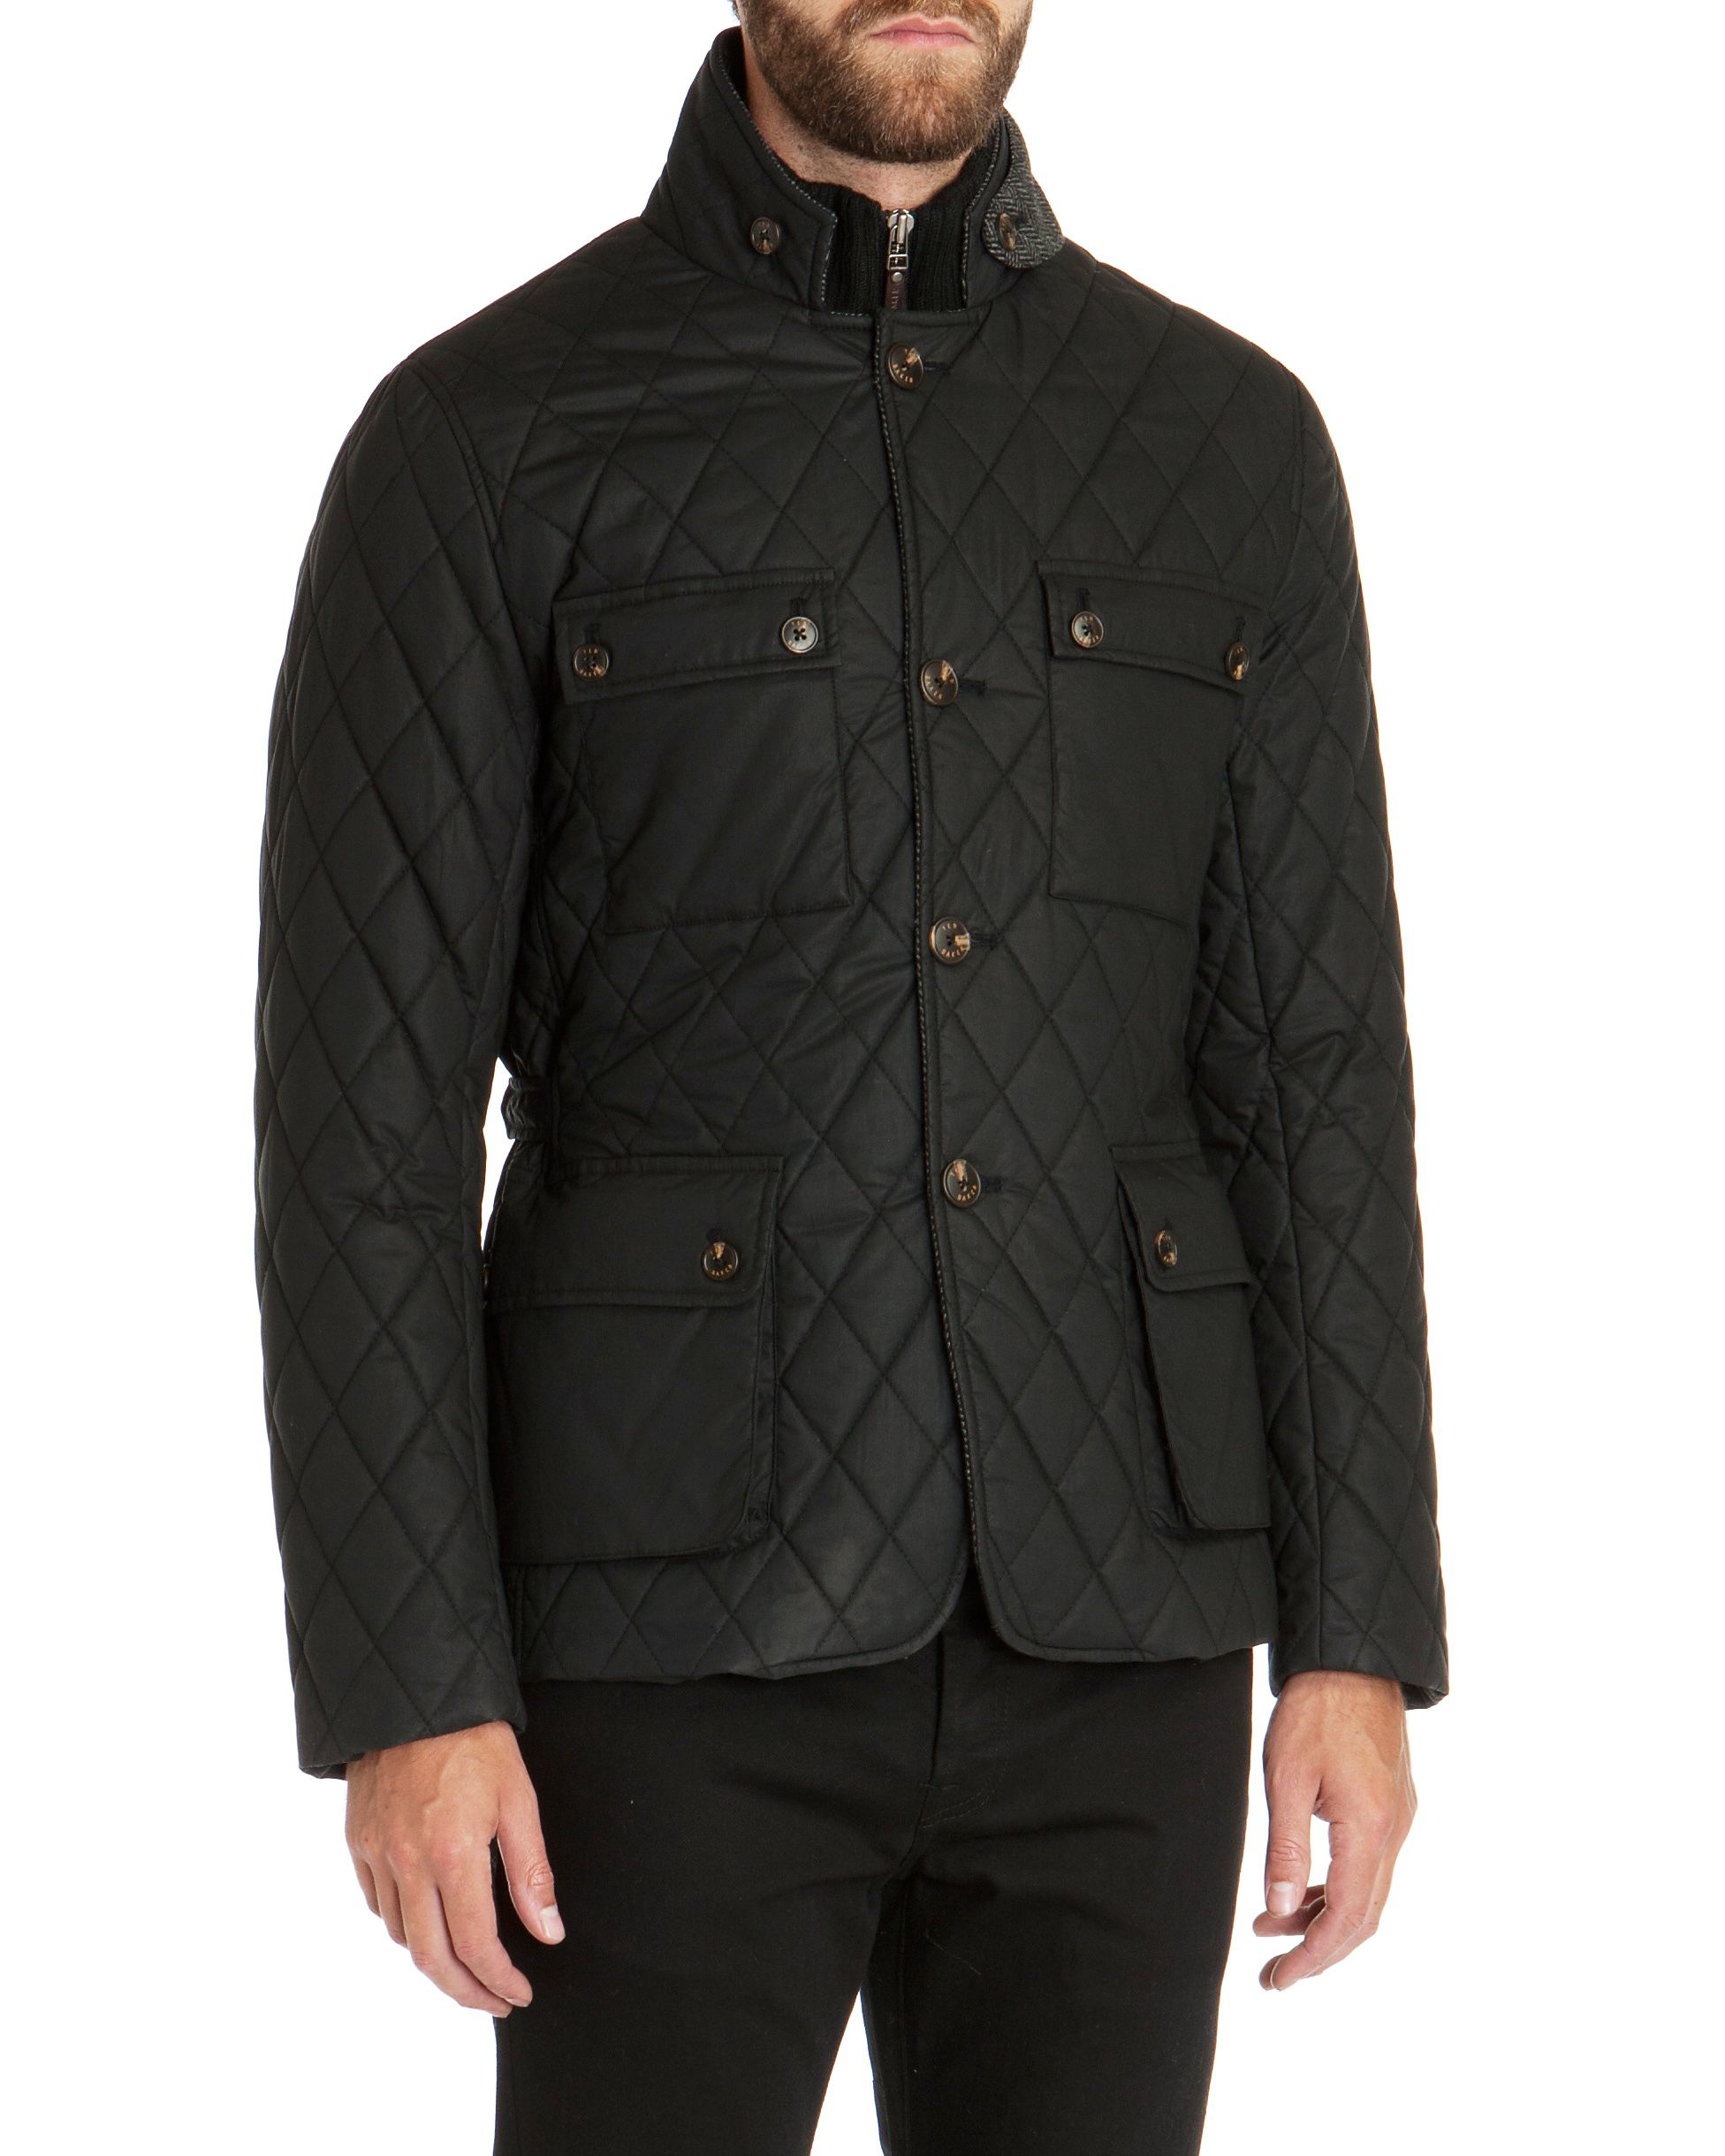 Kemond diamond quilted jacket